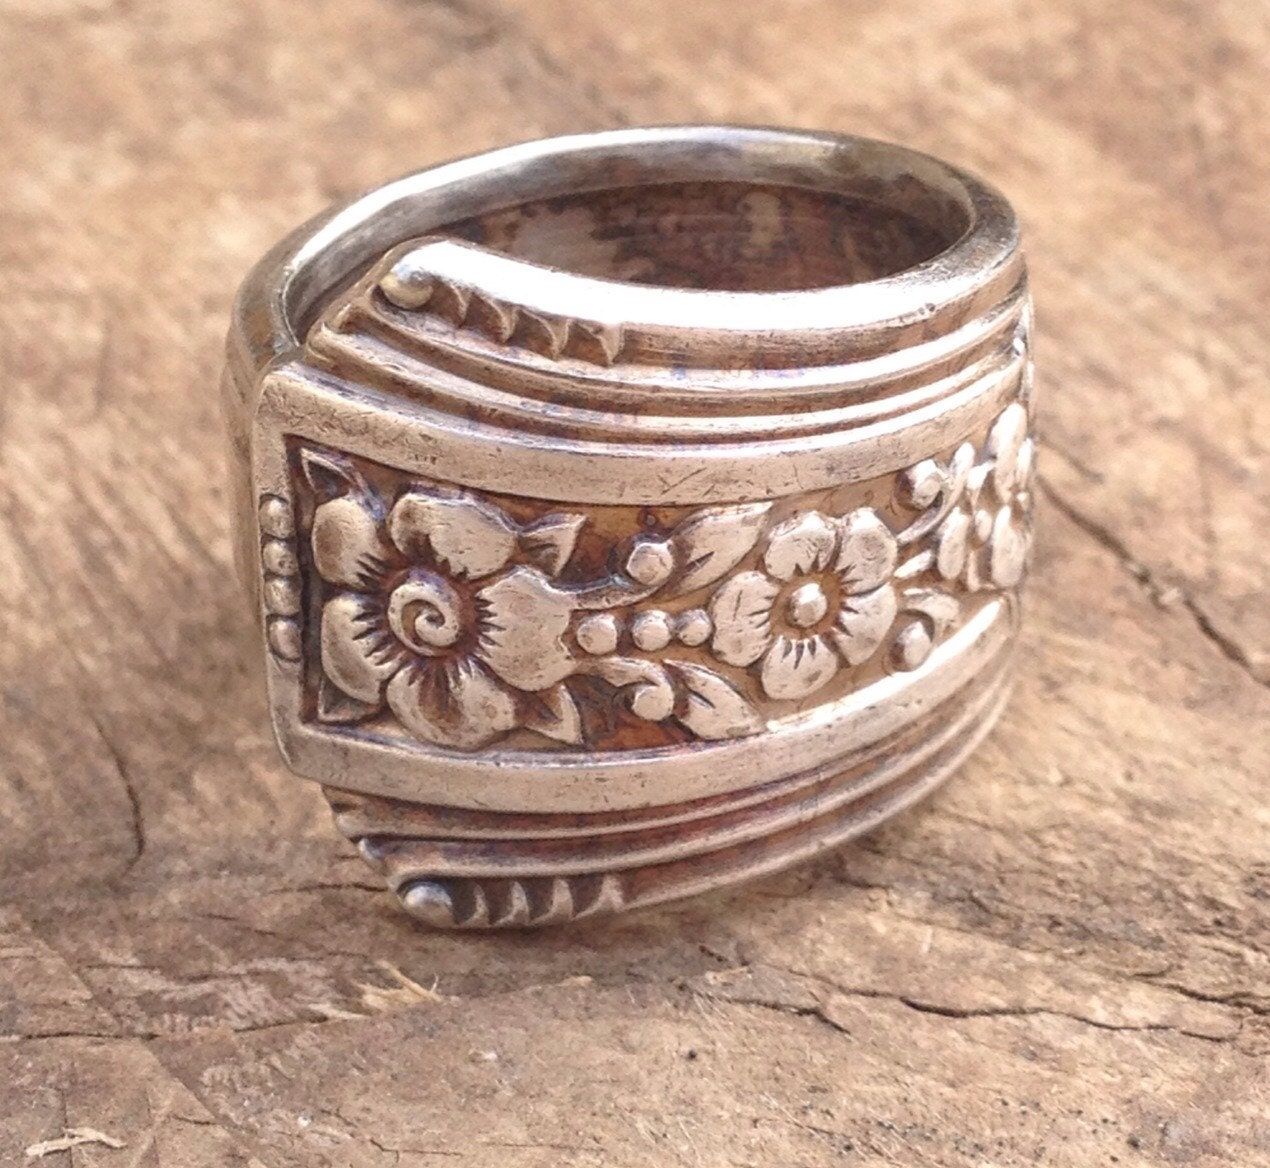 spoon ring vintage spoon rings silver plated purity